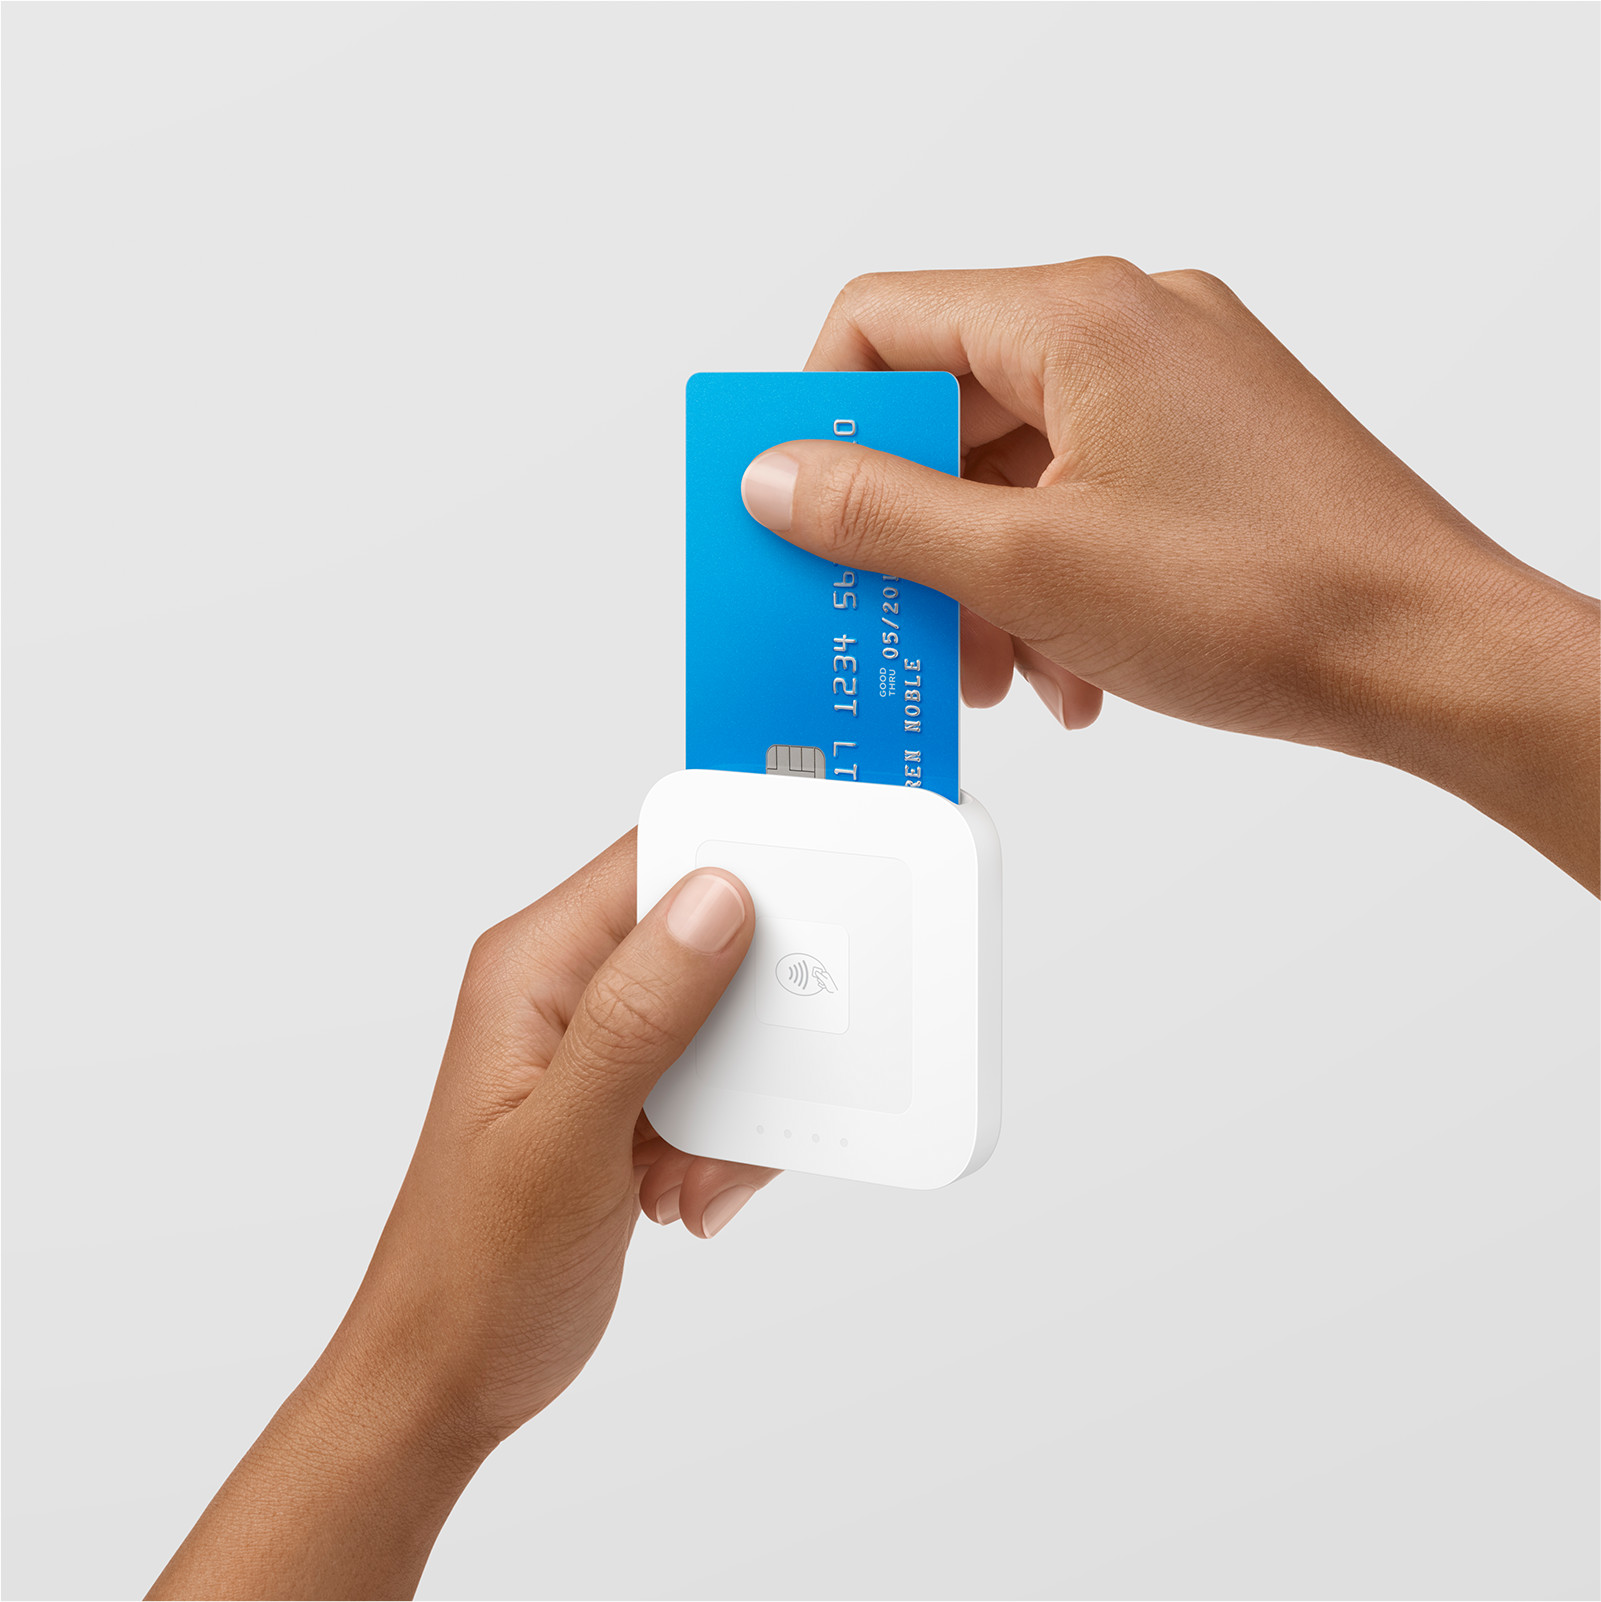 A Square contactless chip reader